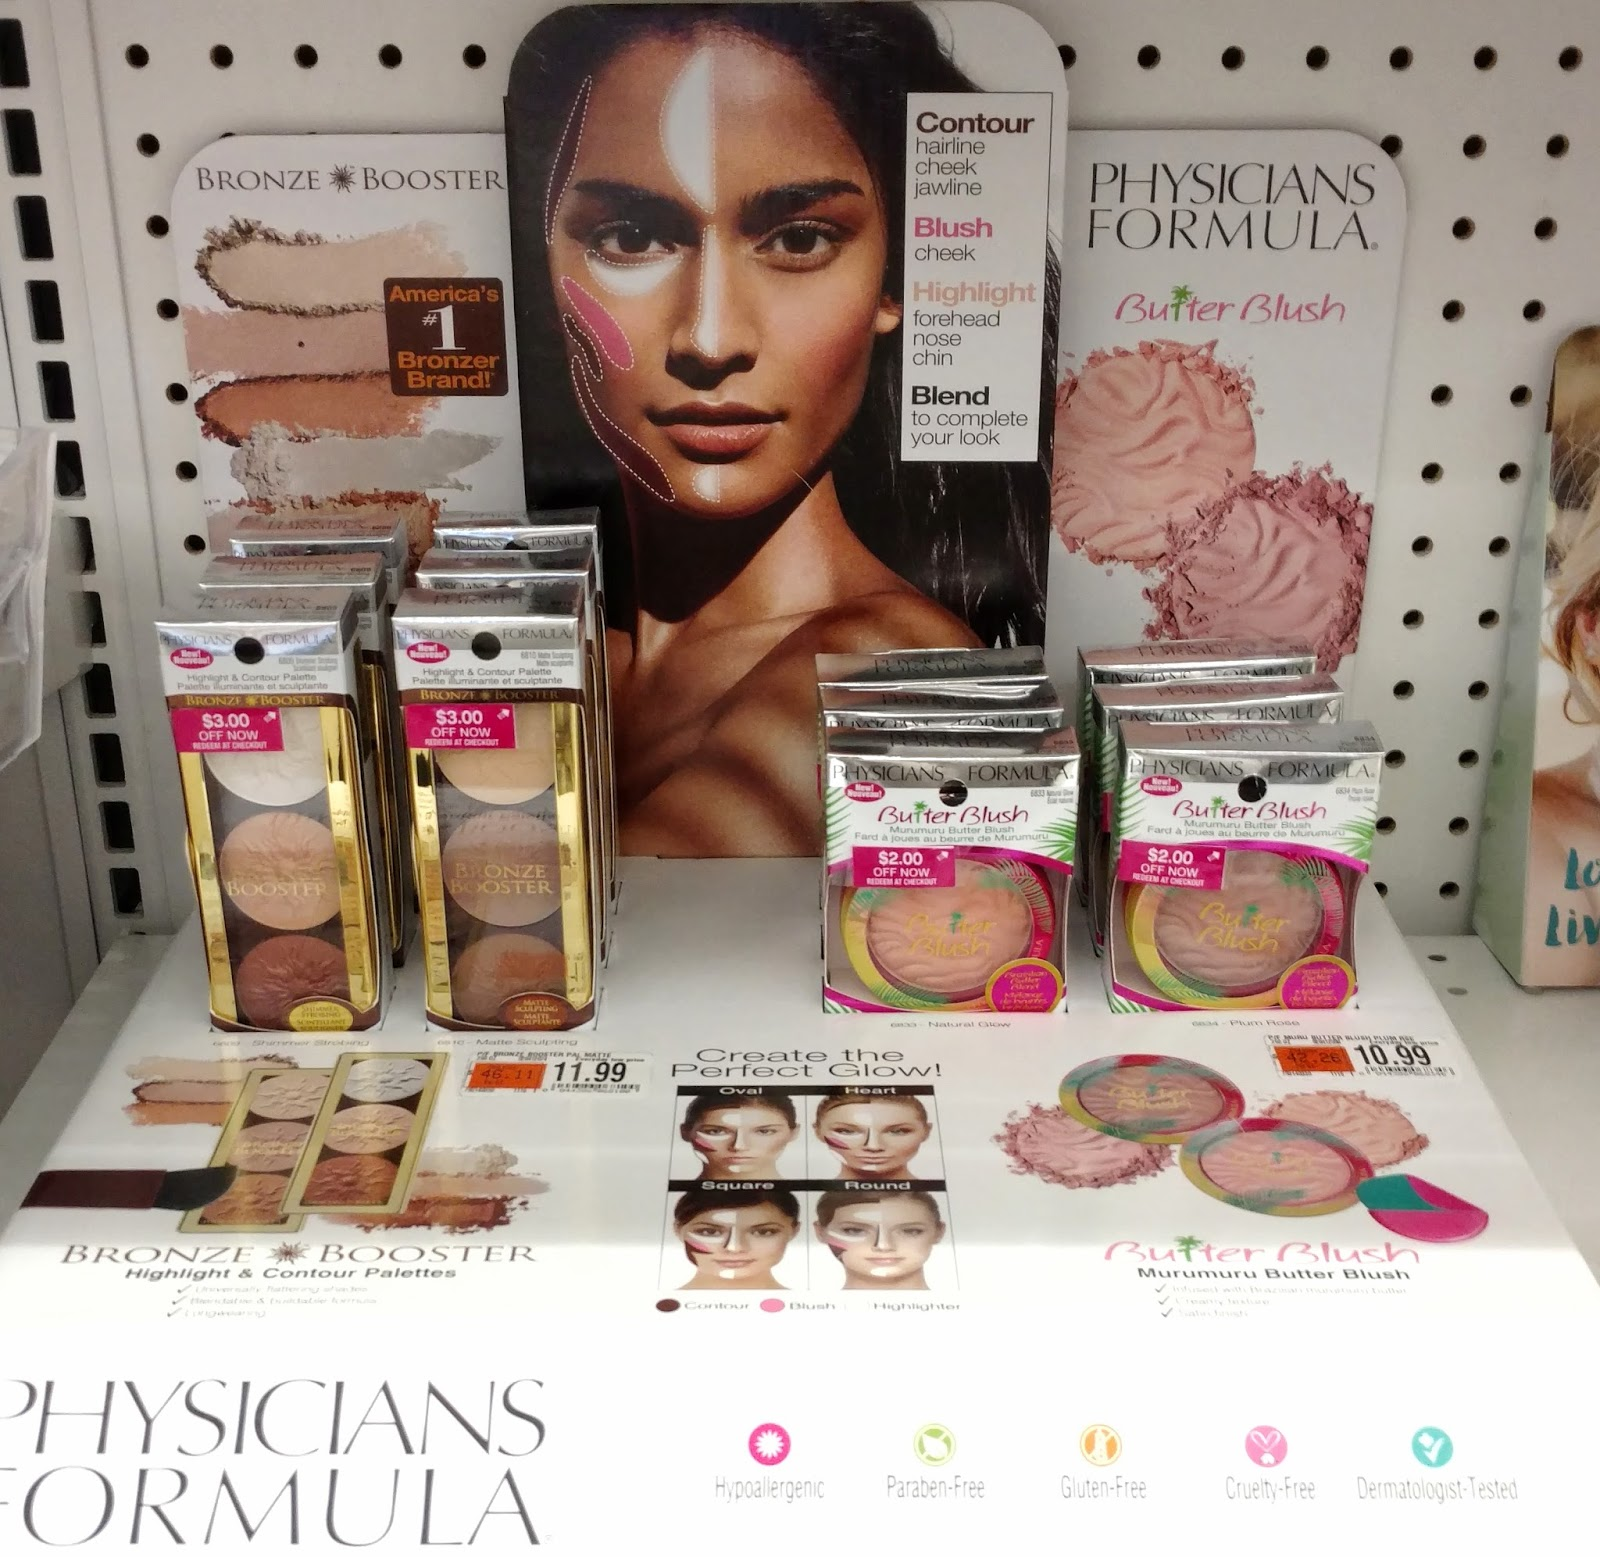 physicians formula butter blush and contour palettes